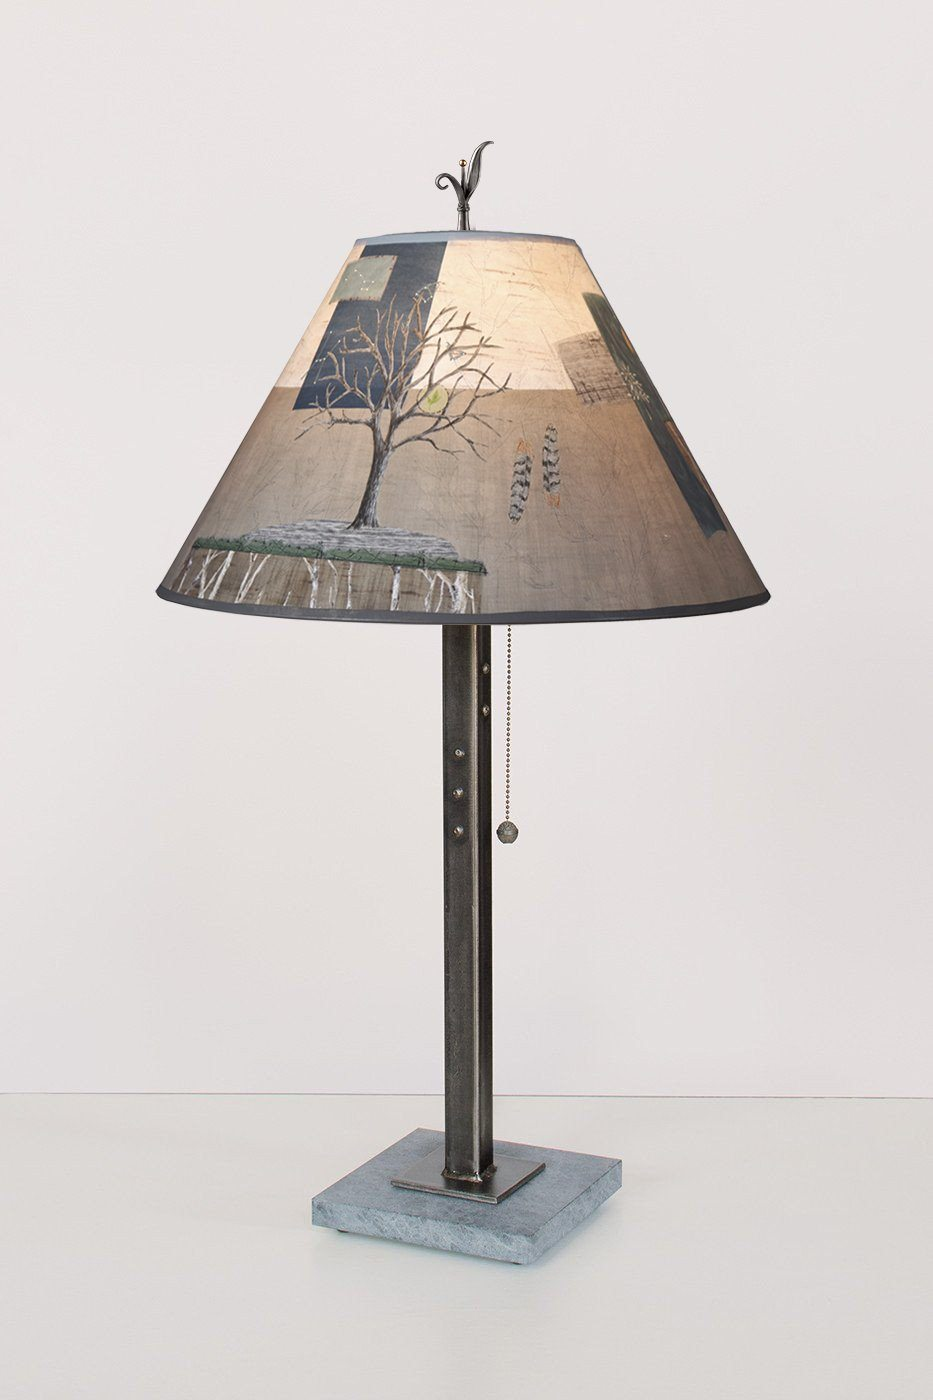 Steel Table Lamp on Italian Marble with Medium Conical Shade in Wander in Drift